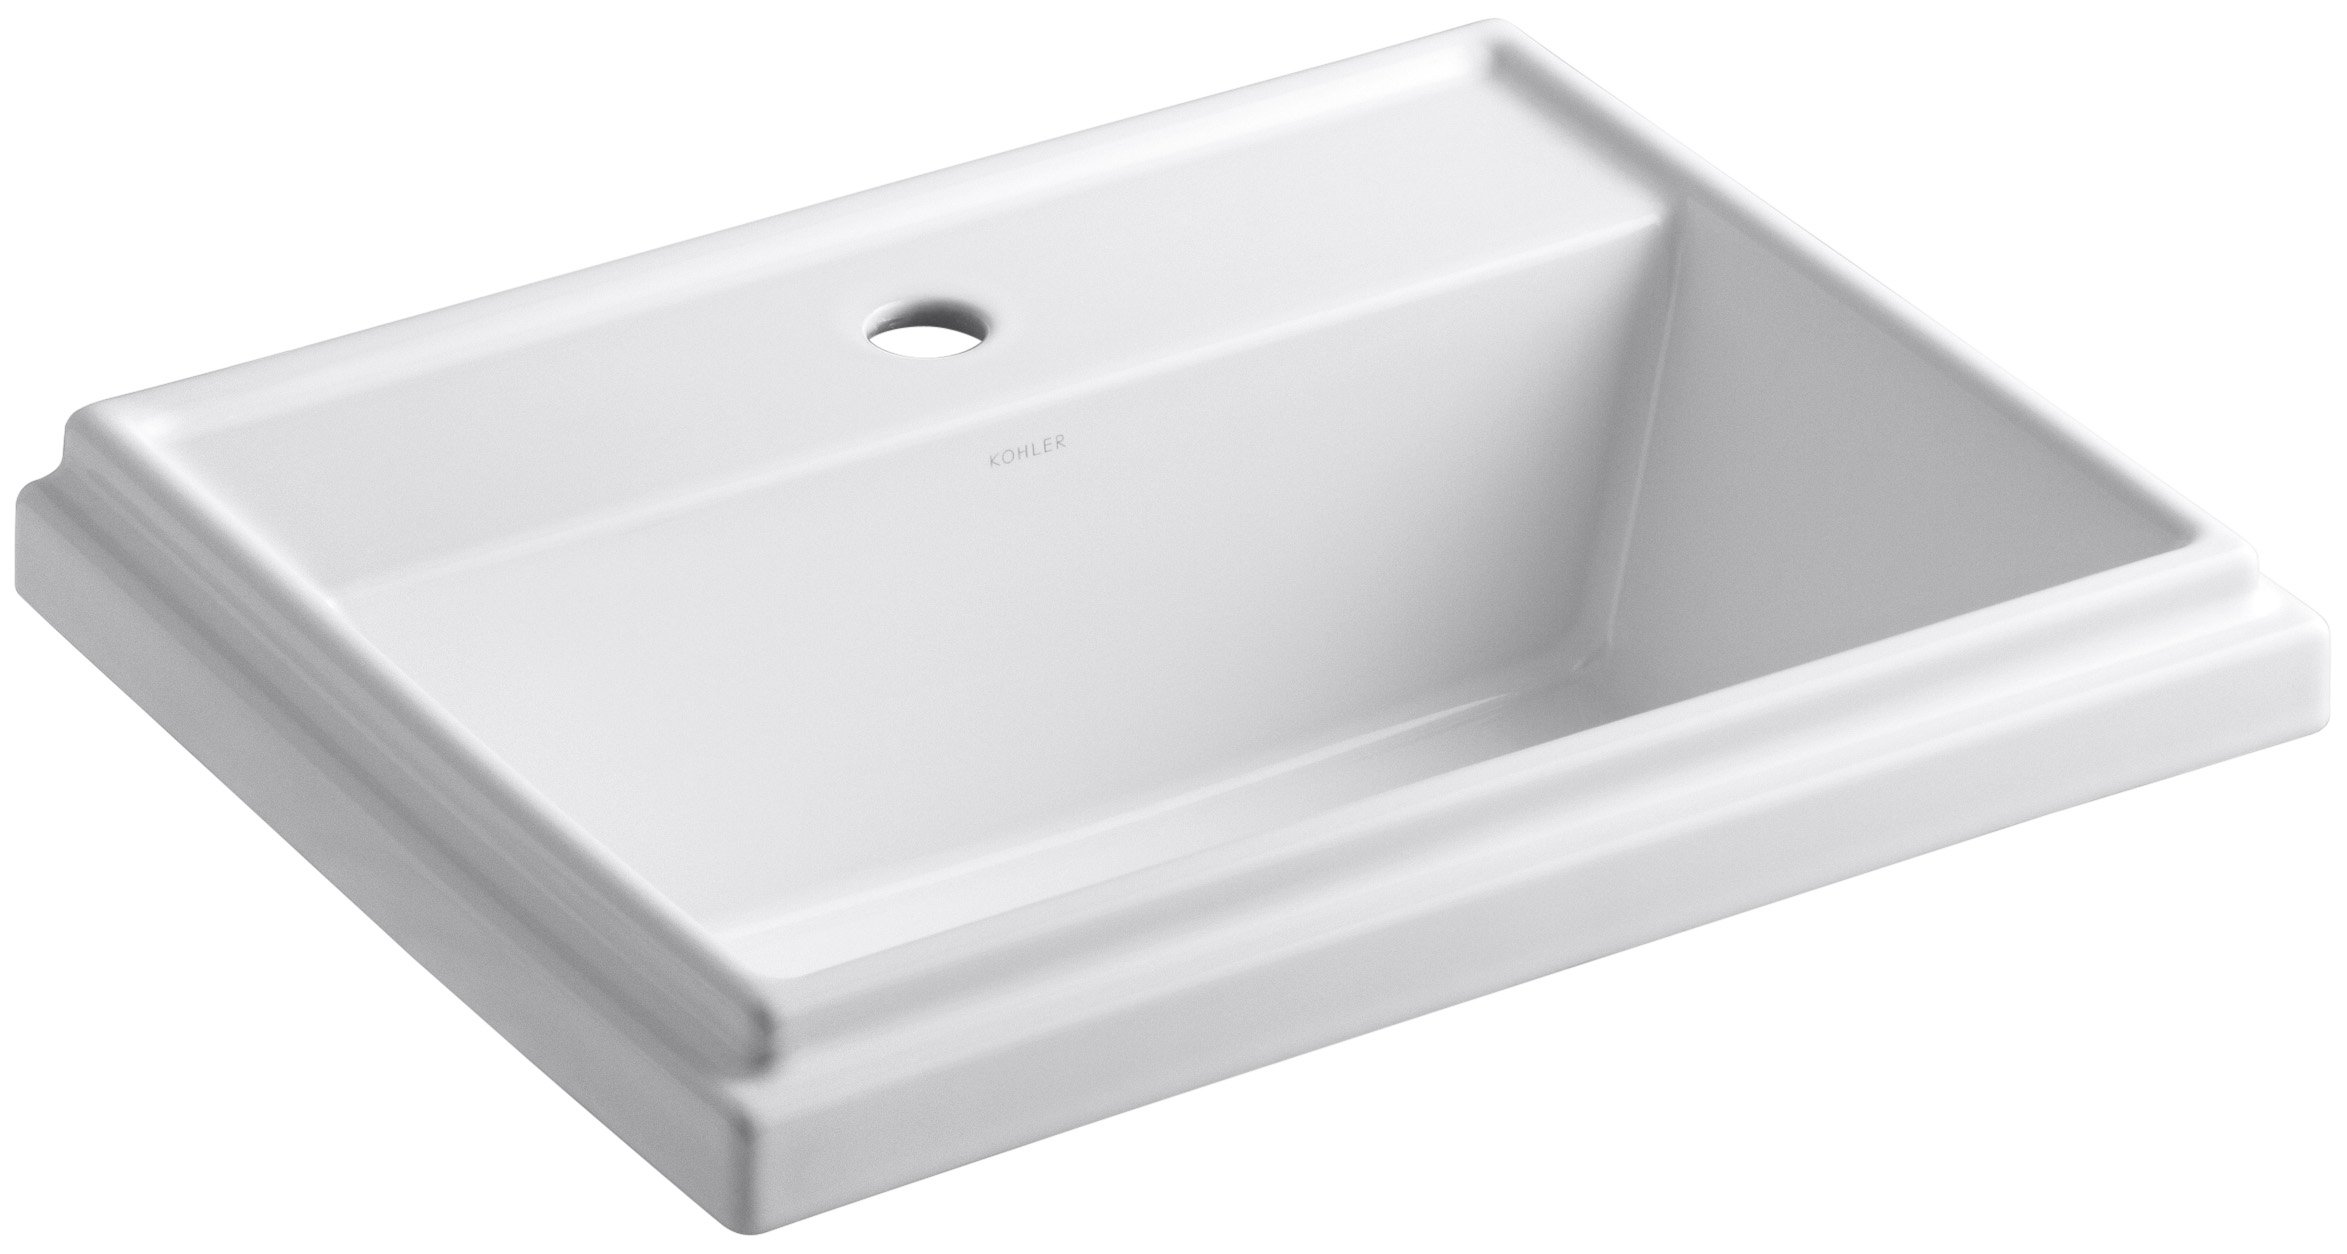 KOHLER K-2991-1-0 Tresham Rectangle Self-Rimming Bathroom Sink with Single-Hole Faucet Drilling, White by Kohler